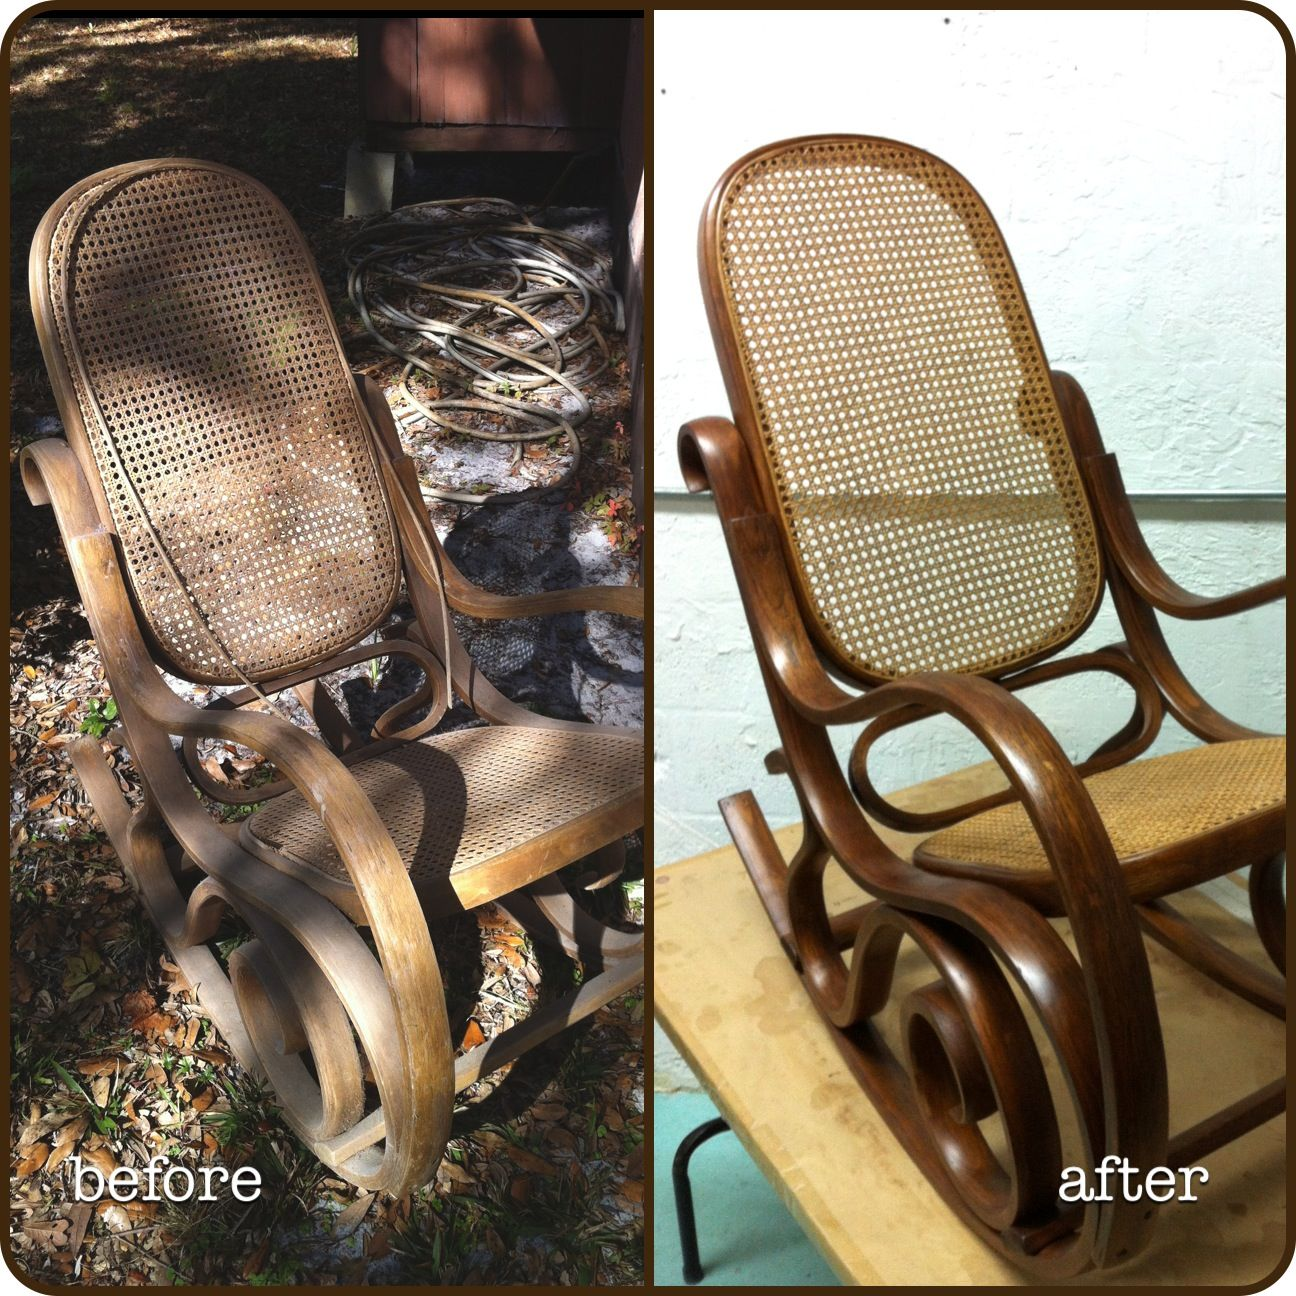 Vintage Bentwood Cane Rocker Rocking Chair I Refinished For A Customer Bentwood Rocker Rockers Rocking Chairs Chair